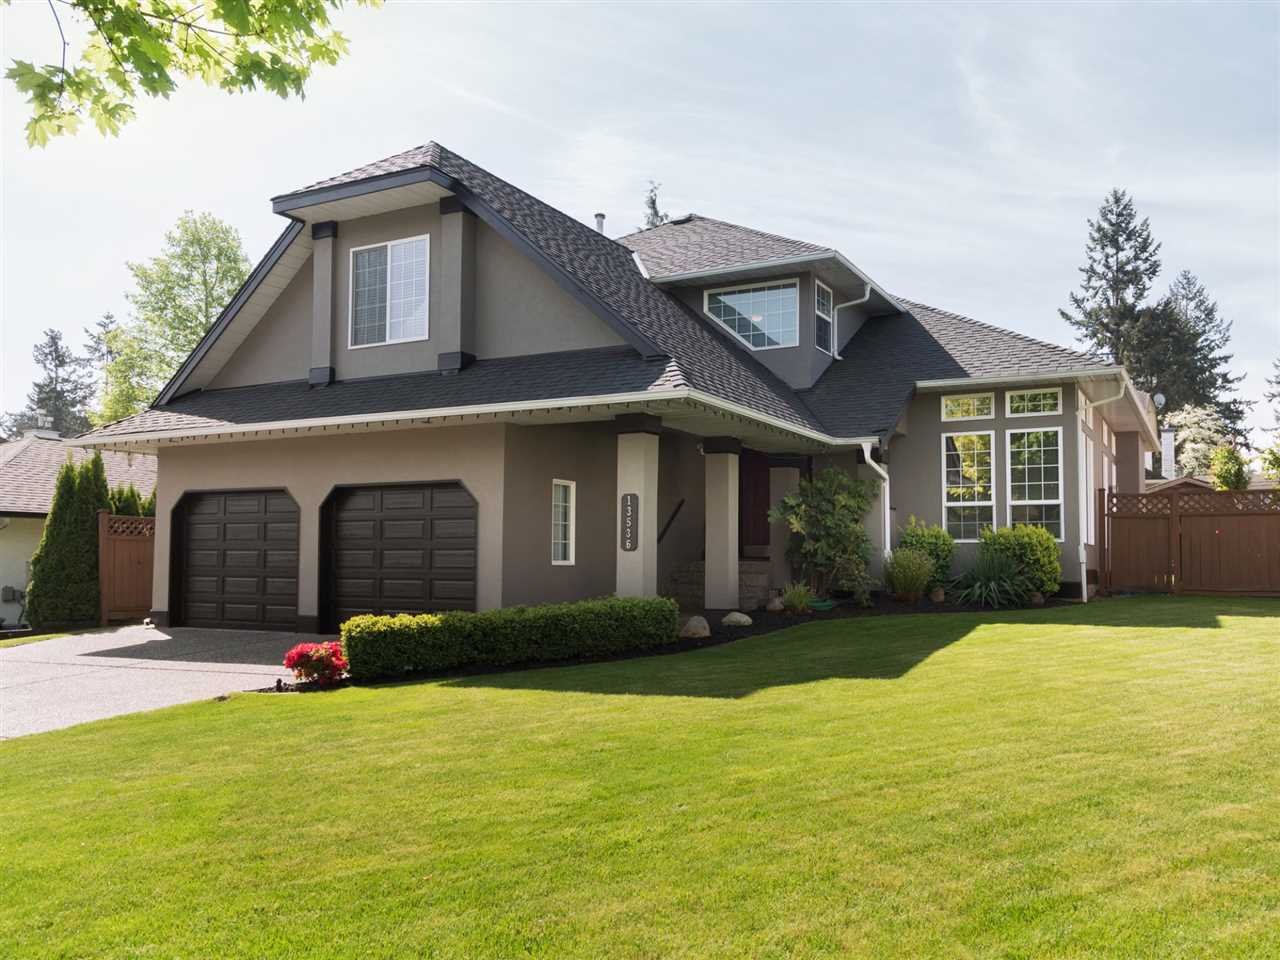 Removed: 13536 60a Avenue, Surrey, BC - Removed on 2018-10-17 05:27:10